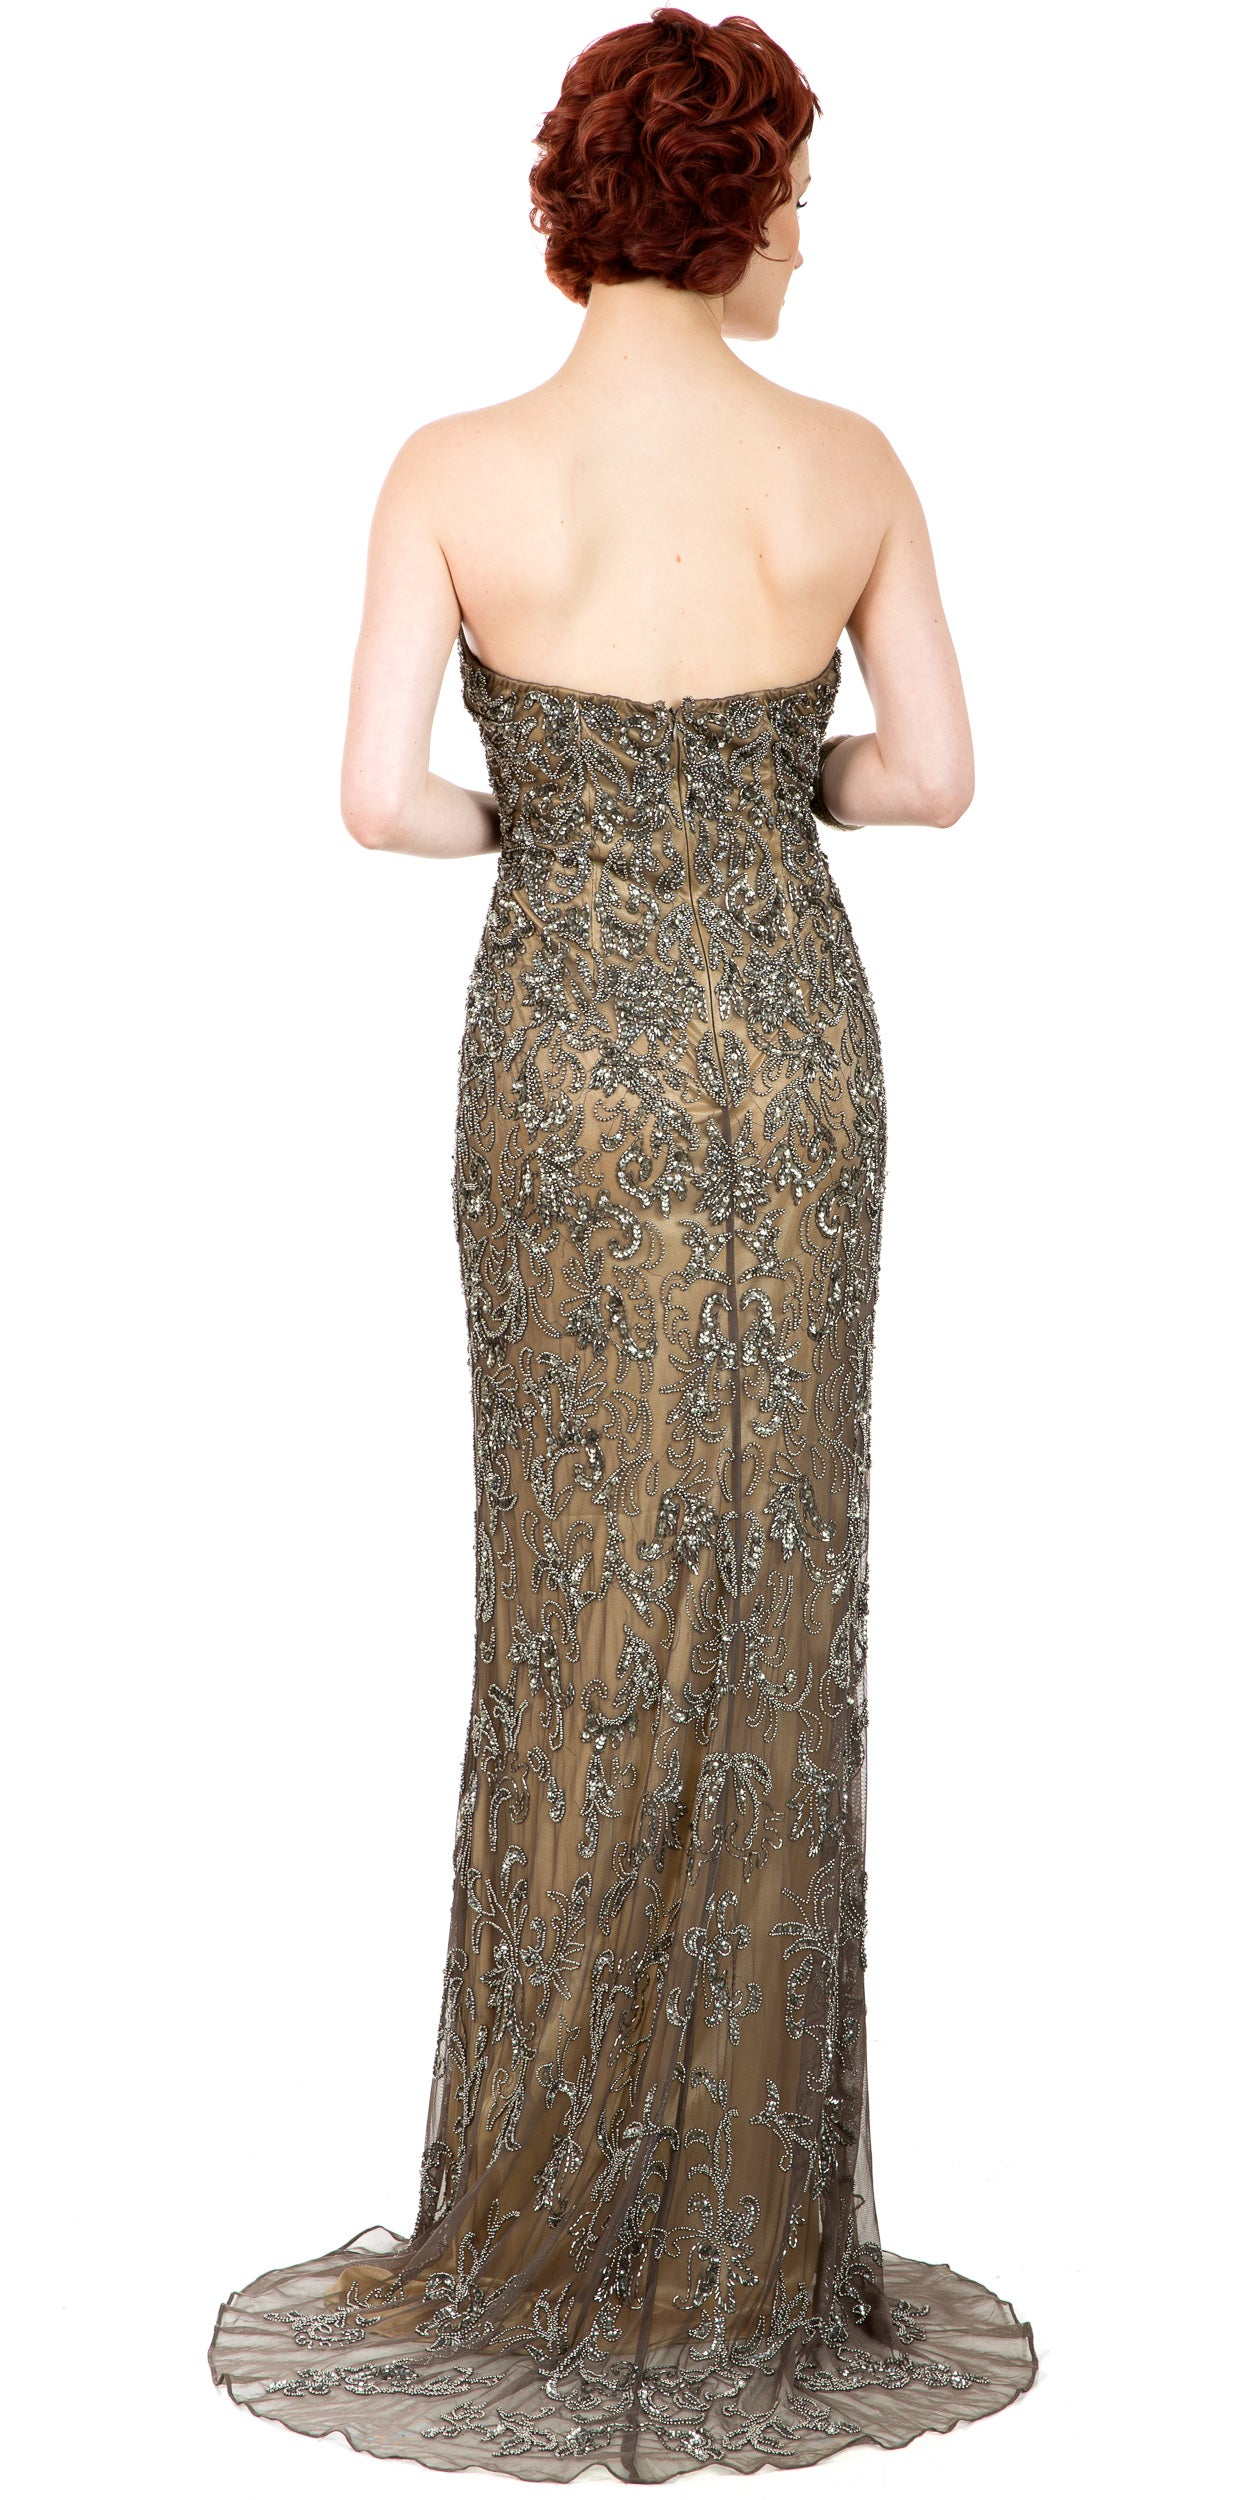 Image of Strapless Floral Beads & Sequins Long Formal Prom Dress back in Lead/Gold